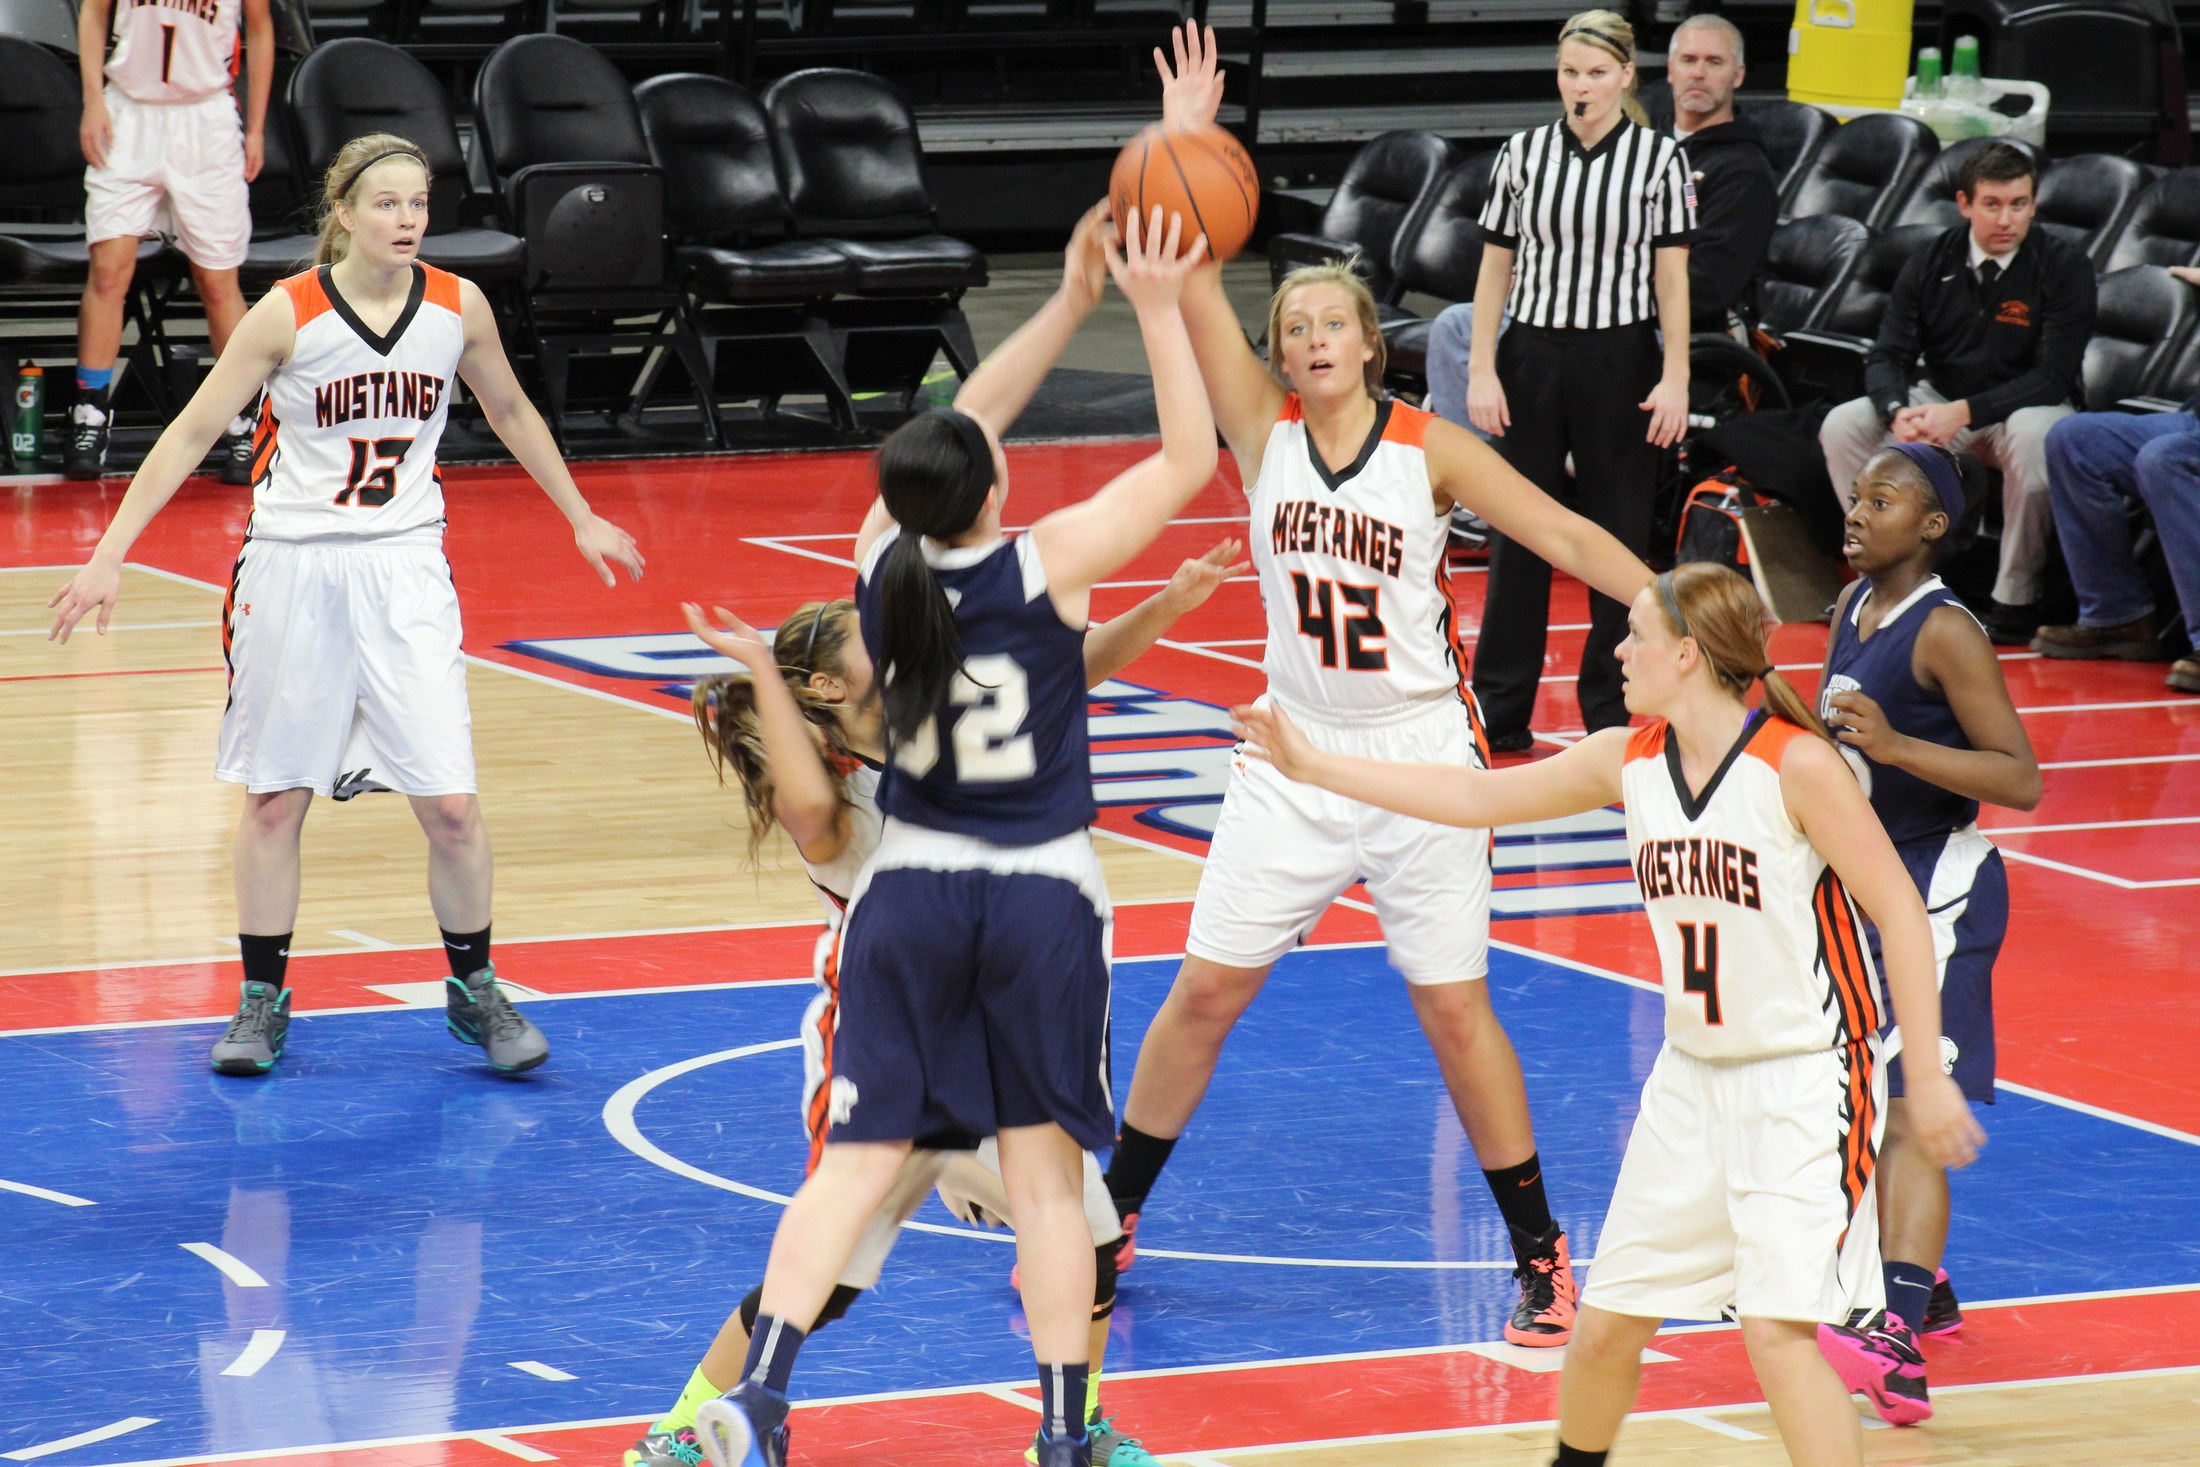 Action photo of girls varsity basketball game at Palace of Auburn Hills